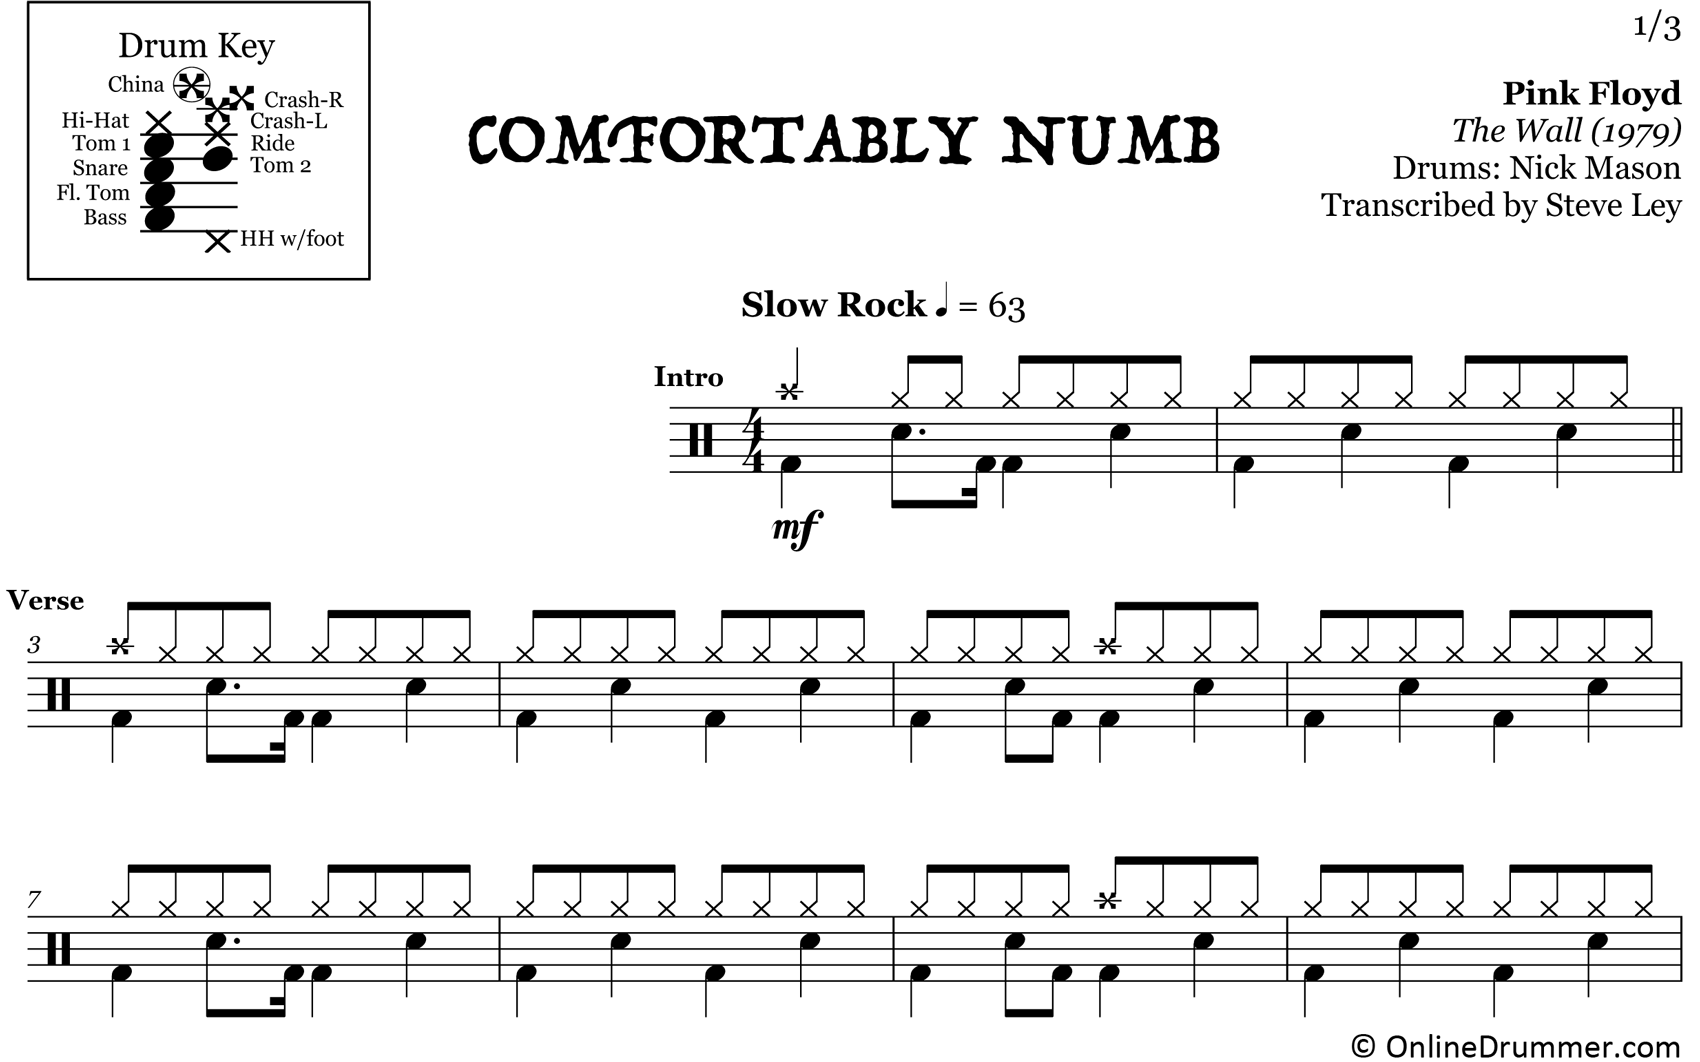 Comfortably Numb - Pink Floyd - Drum Sheet Music